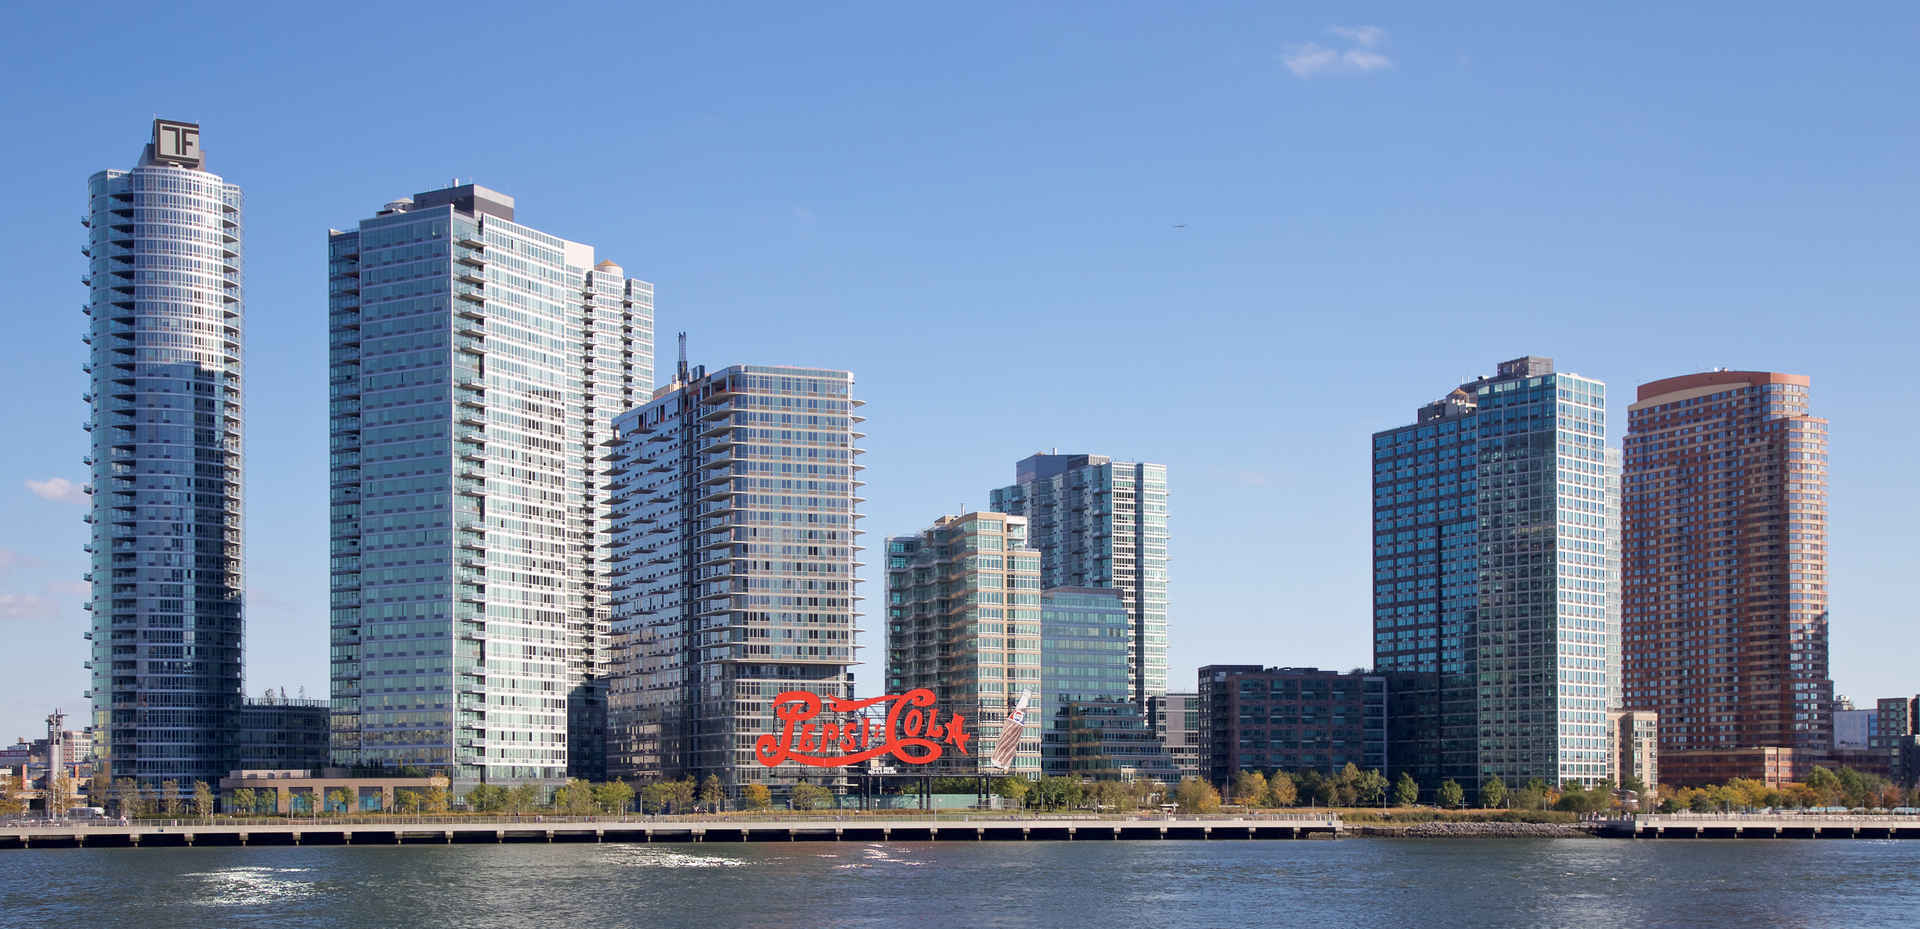 Skyline of Long Island City Queens, New York